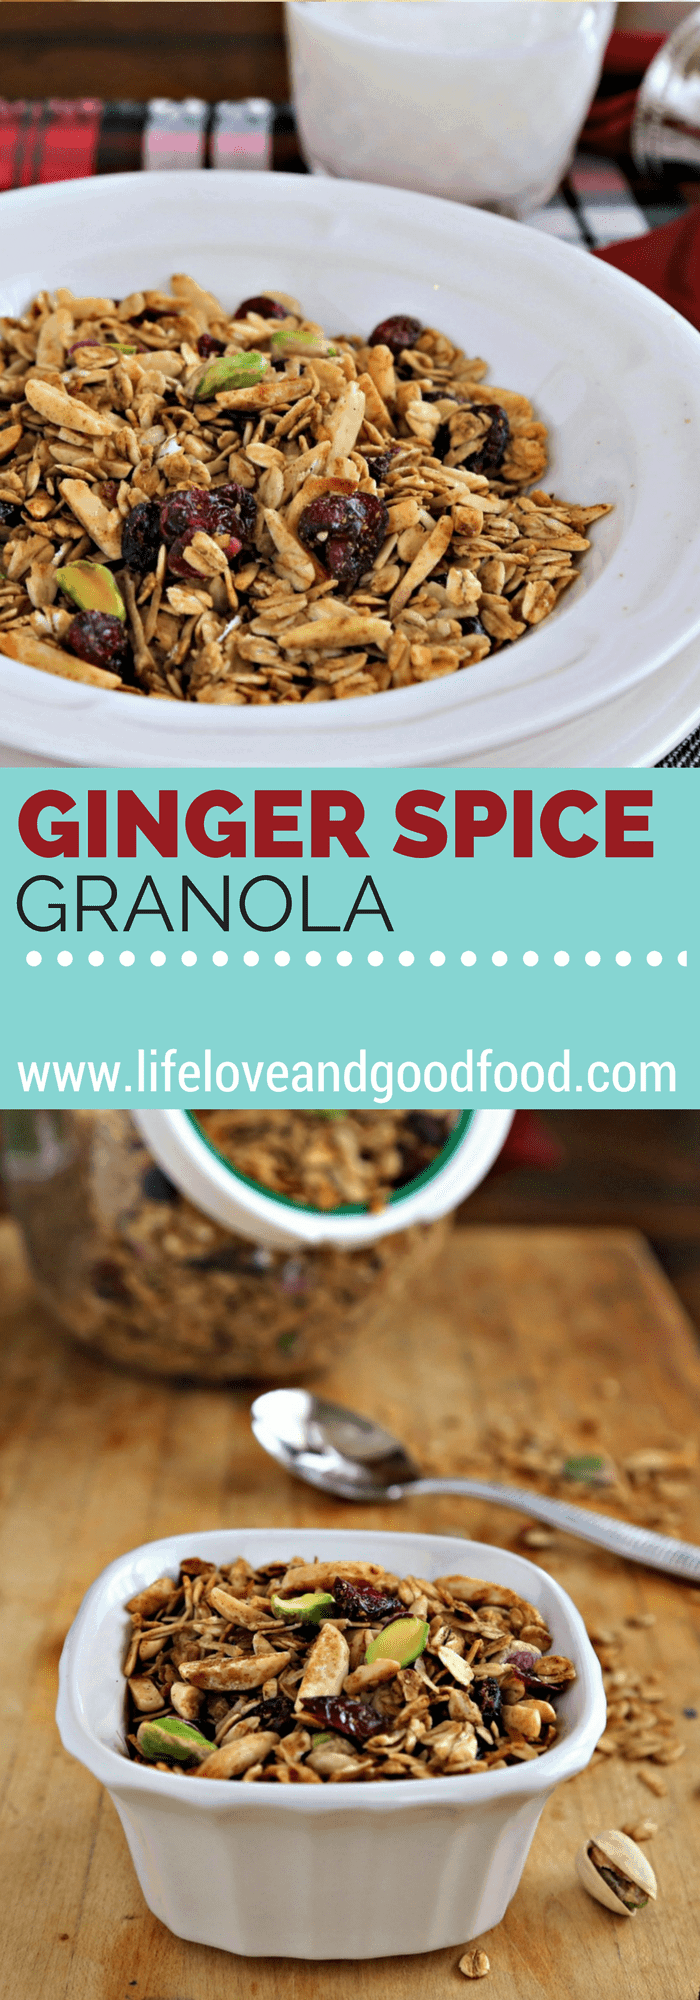 Ginger Spice Granola | Life, Love, and Good Food